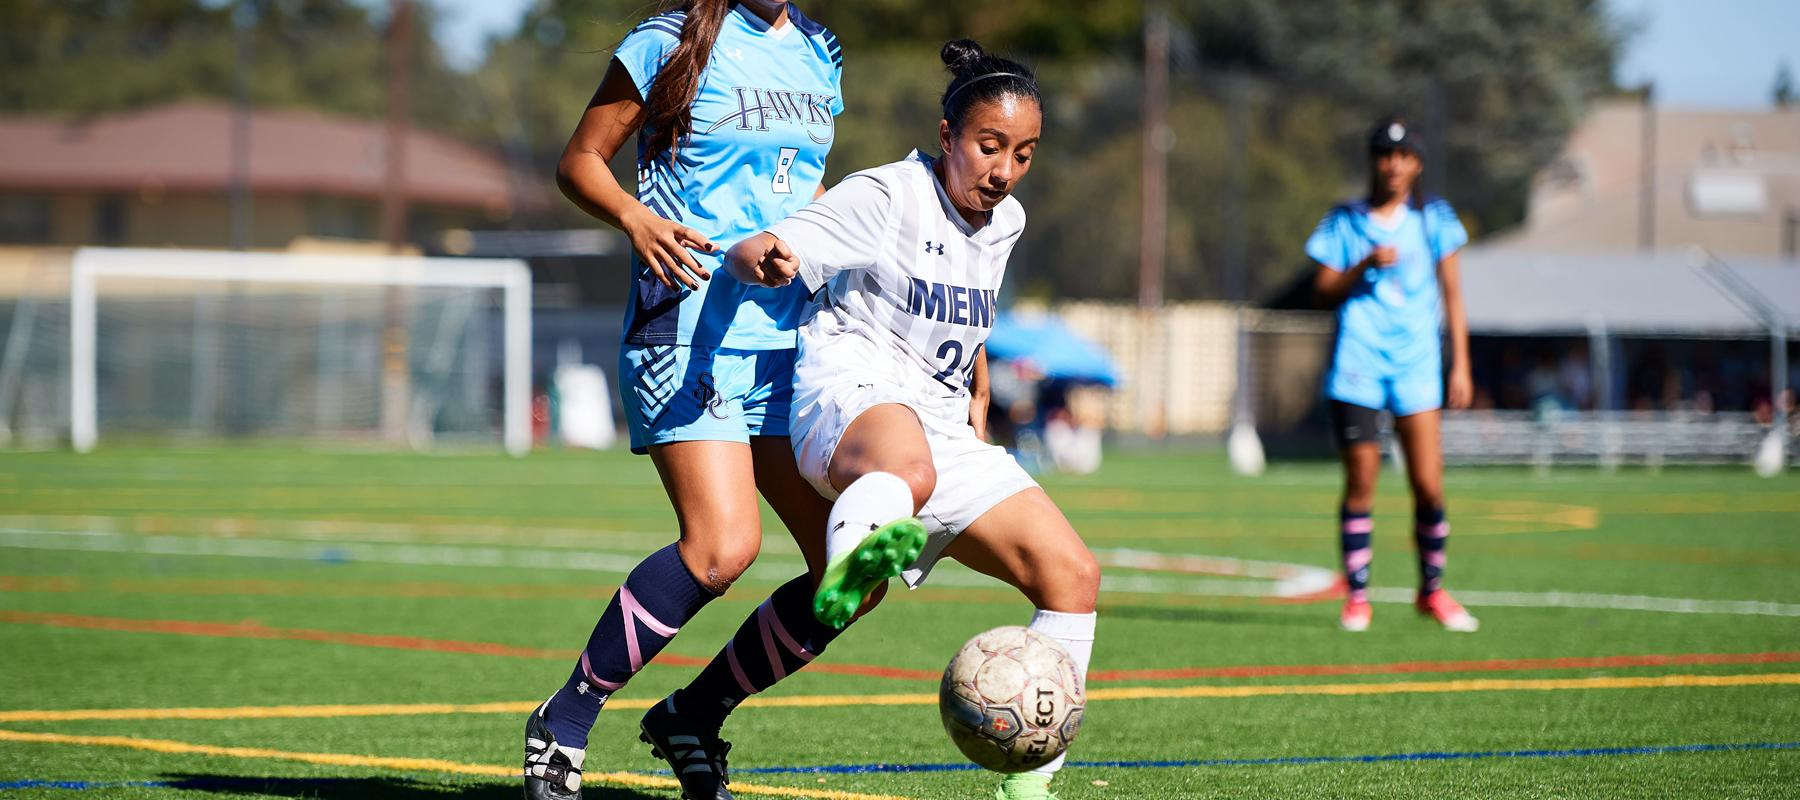 Ramirez and Kualapai score to give Menlo 2-0 win over William Jessup